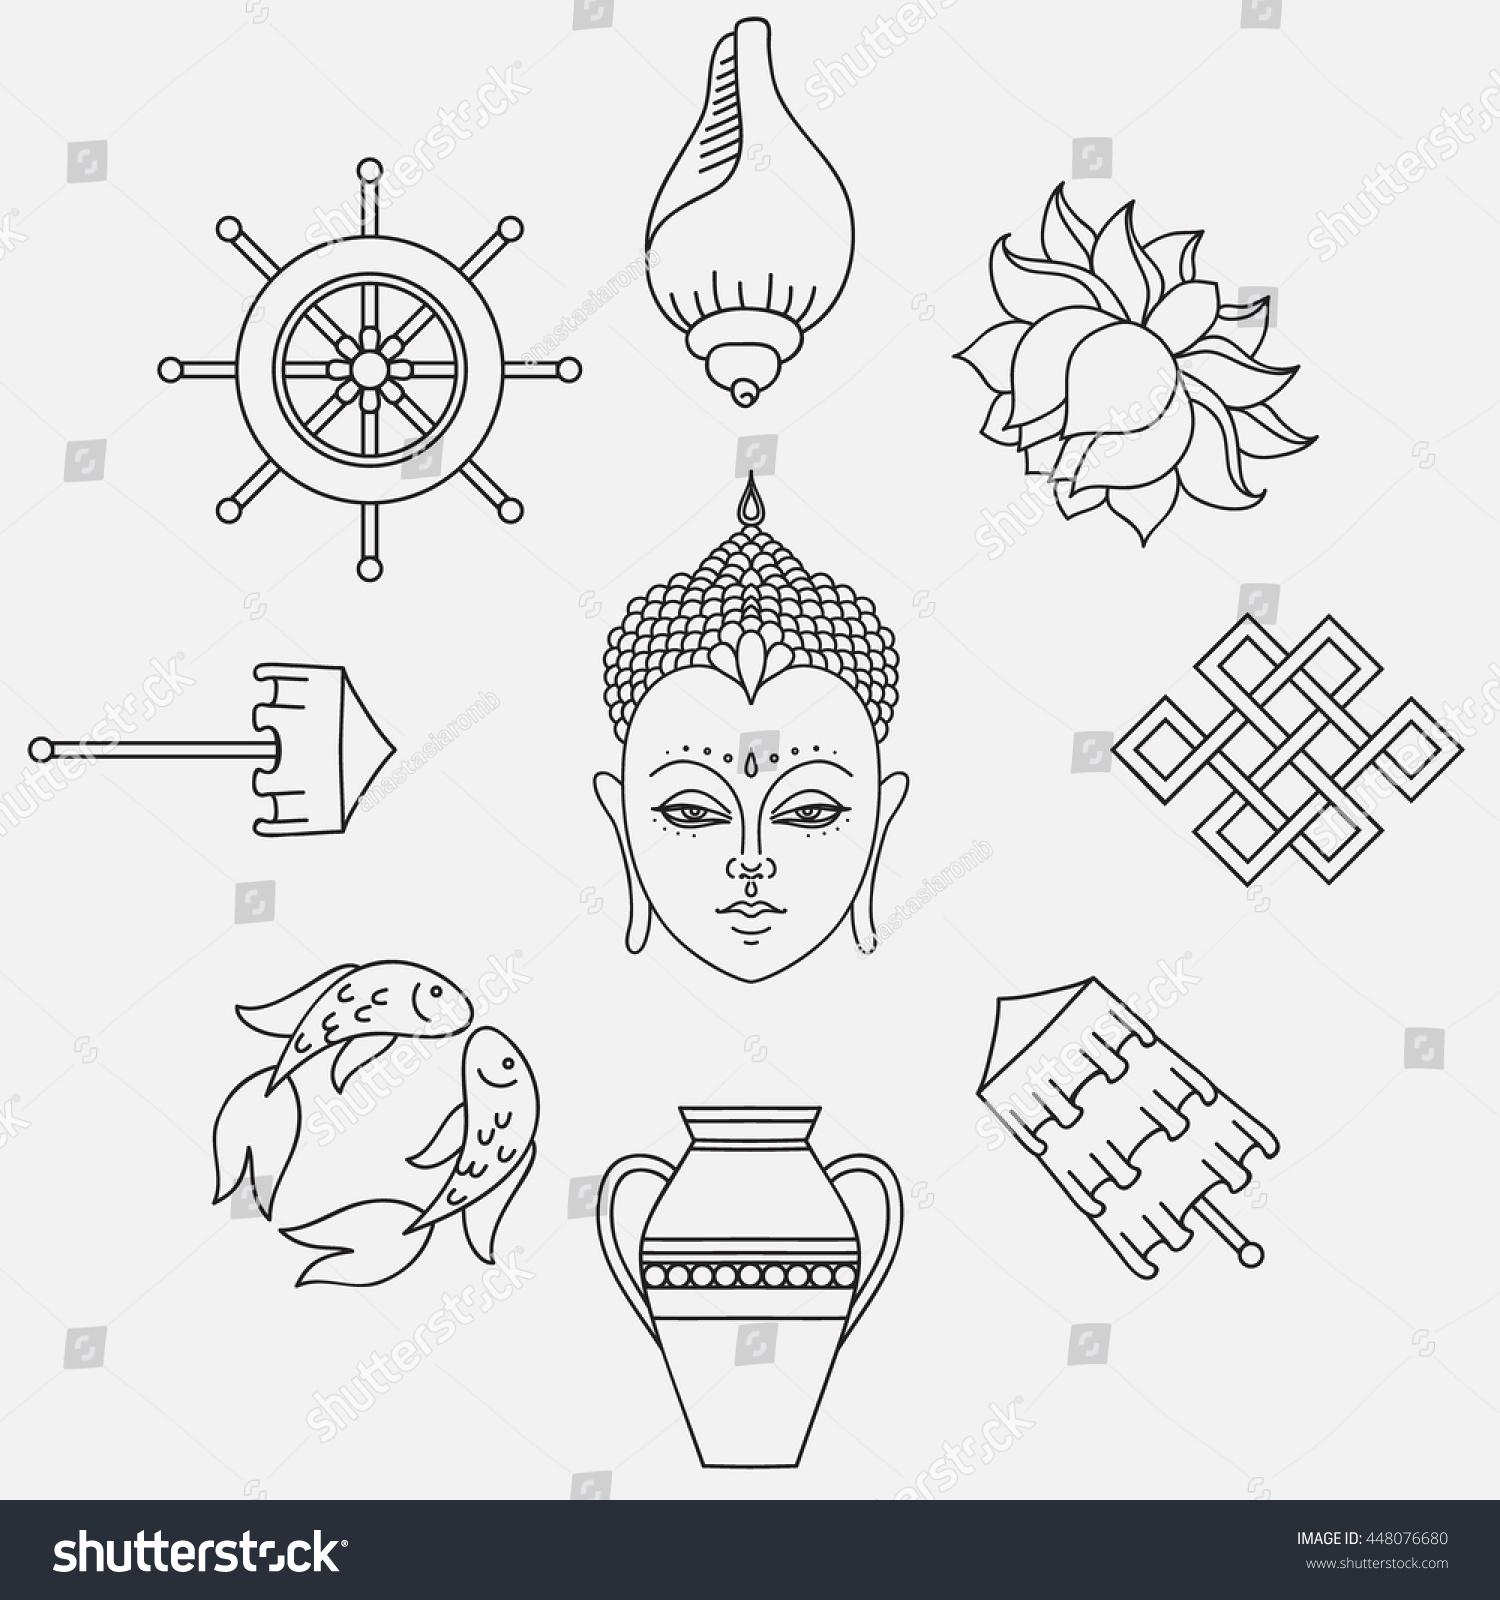 Buddhist symbolism 8 auspicious symbols buddhism stock vector buddhist symbolism the 8 auspicious symbols of buddhism right coiled white conch izmirmasajfo